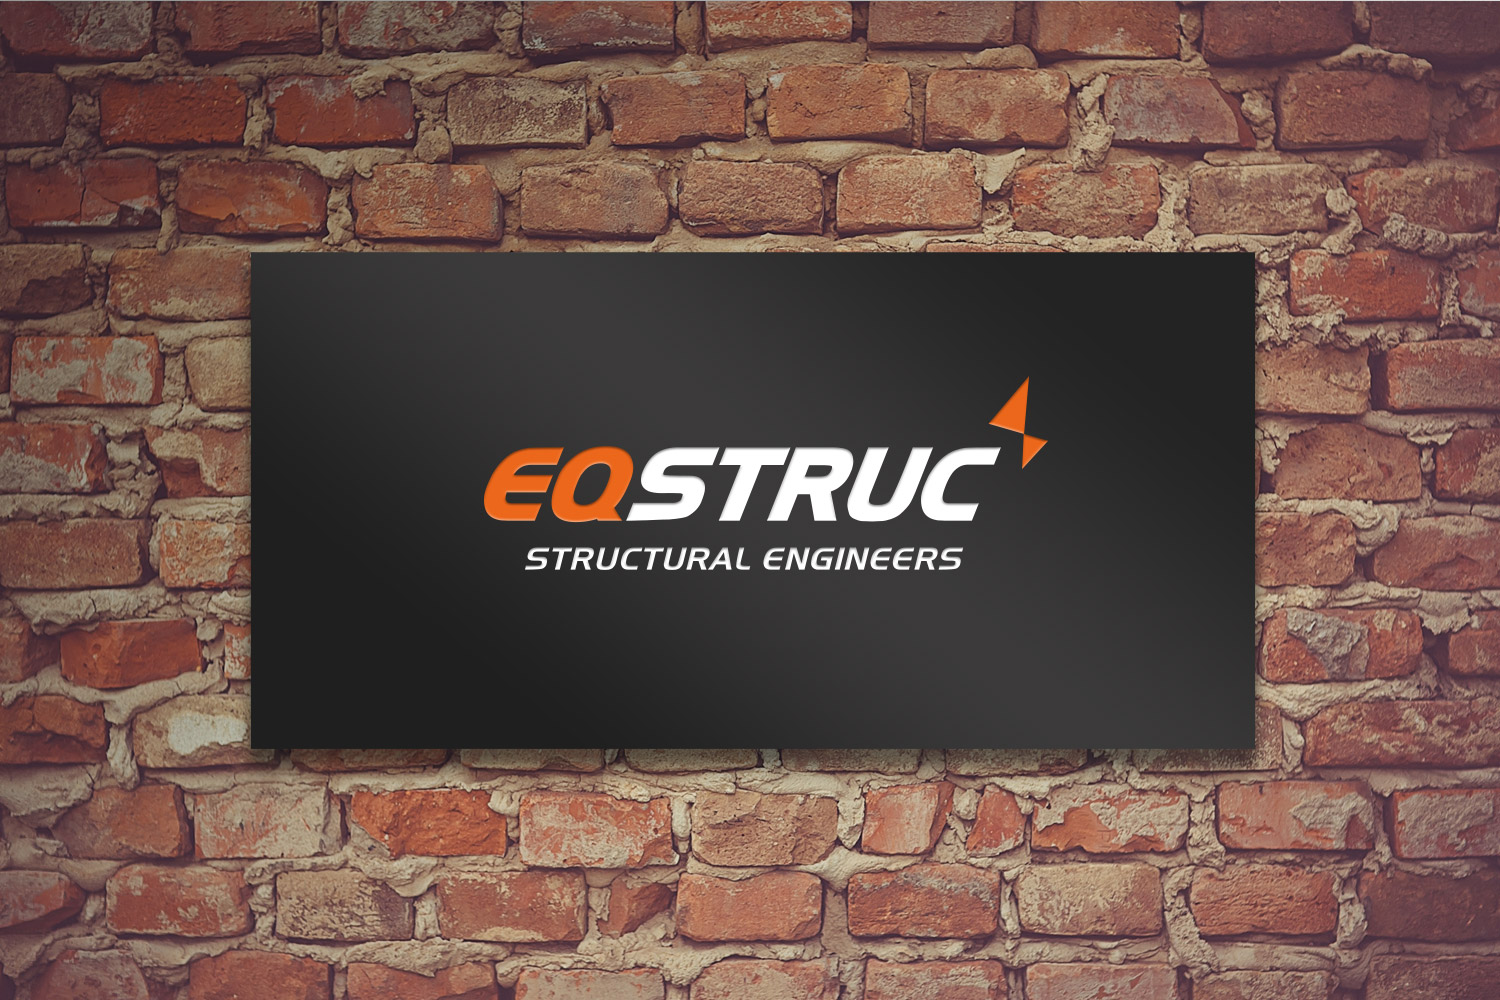 Logo sign EQ STruc